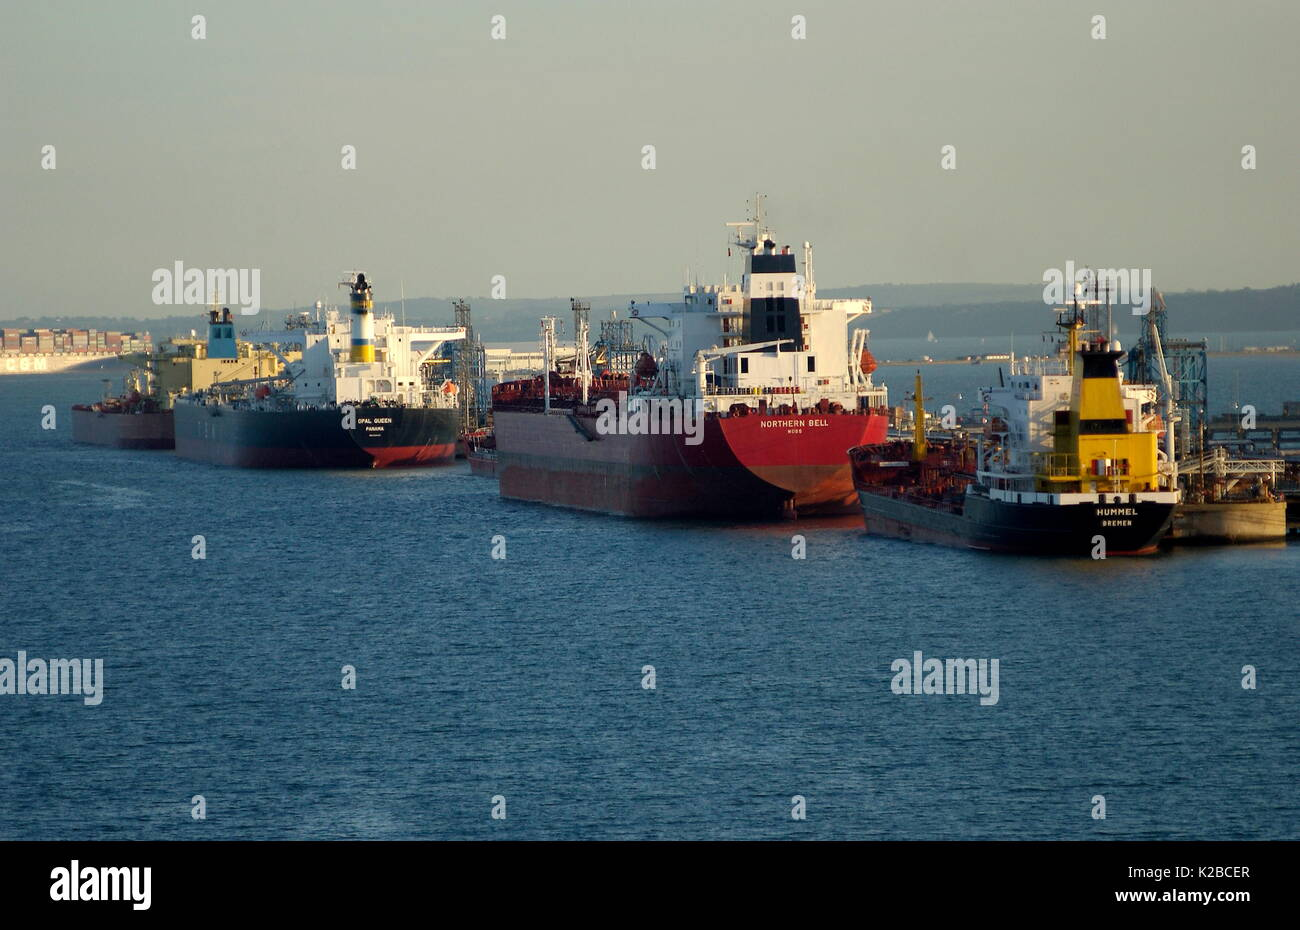 AJAXNETPHOTO. ENGLAND - OIL TANKERS DISCHARGING AT OIL REFINERY TERMINAL. PHOTO:JONATHAN EASTLAND/AJAX REF:D61510_397 - Stock Image